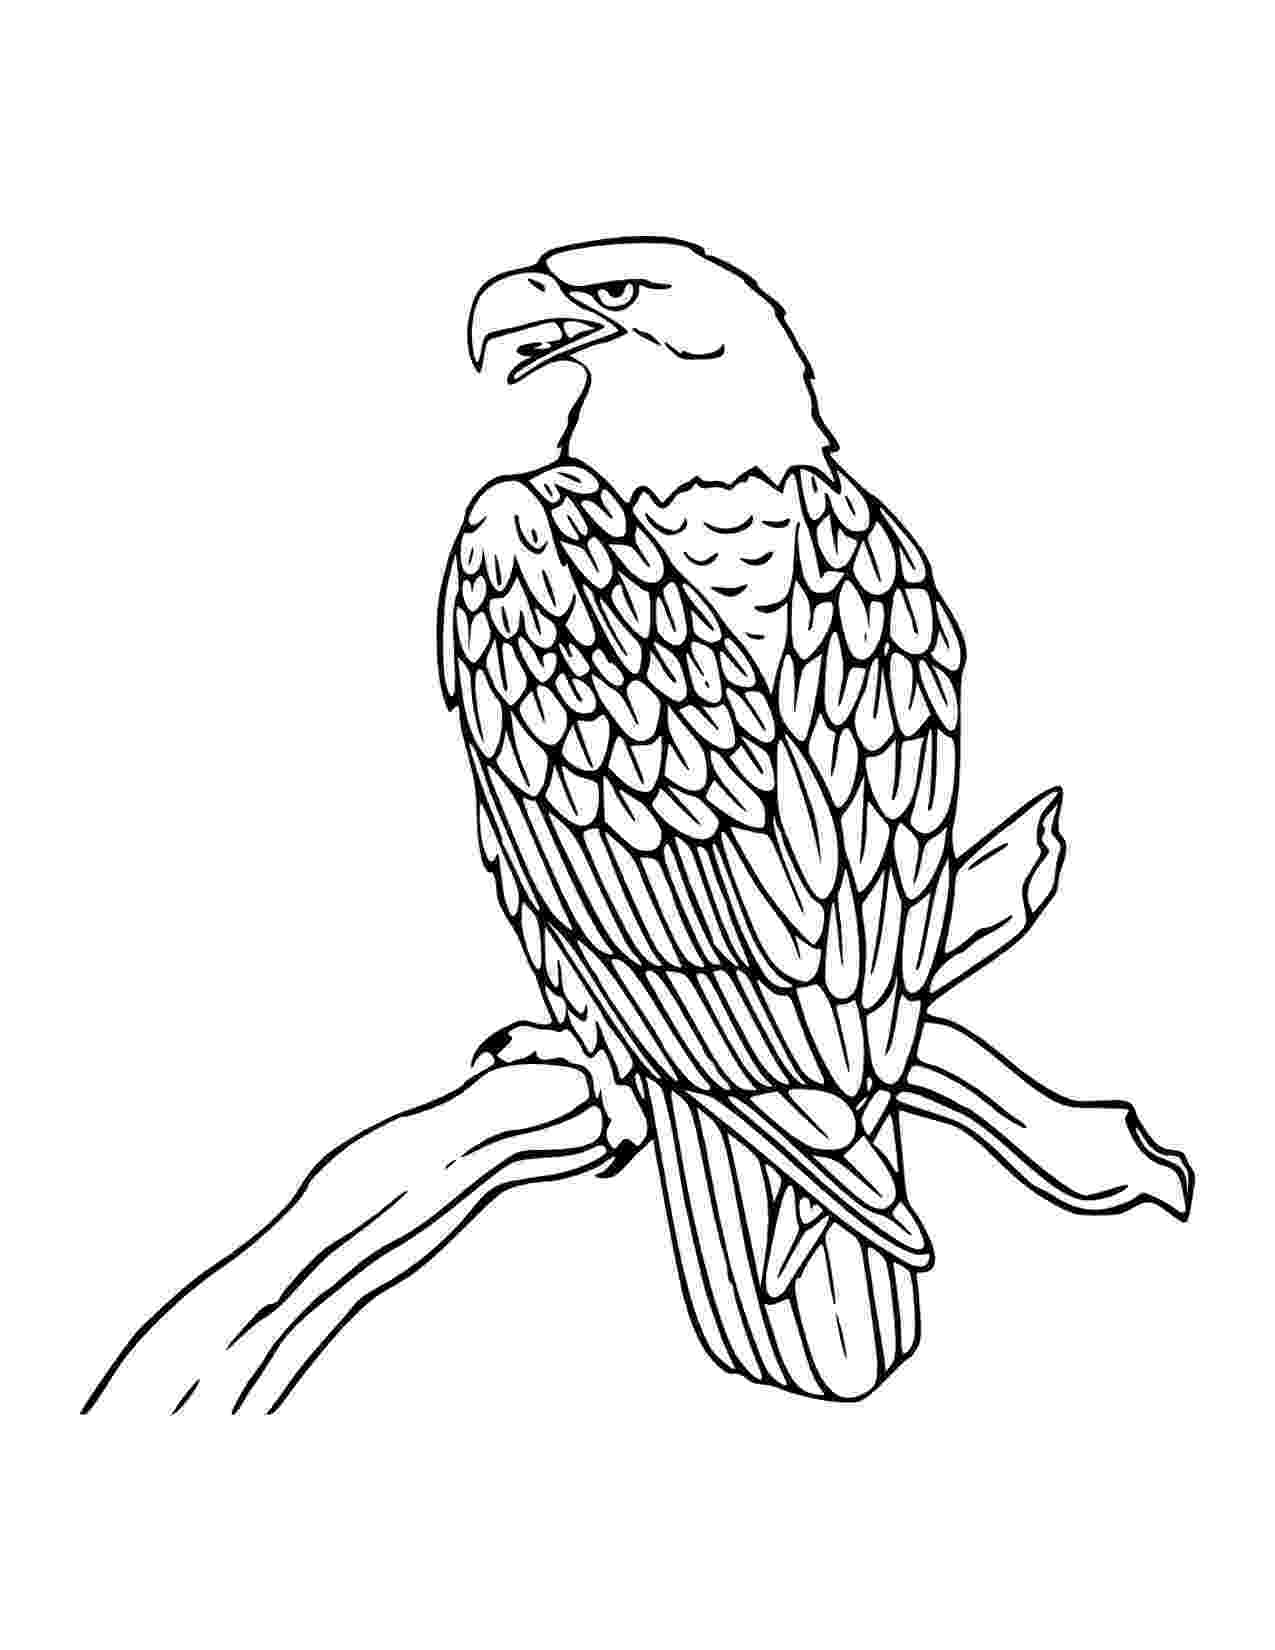 coloring book eagle free eagle coloring pages book coloring eagle